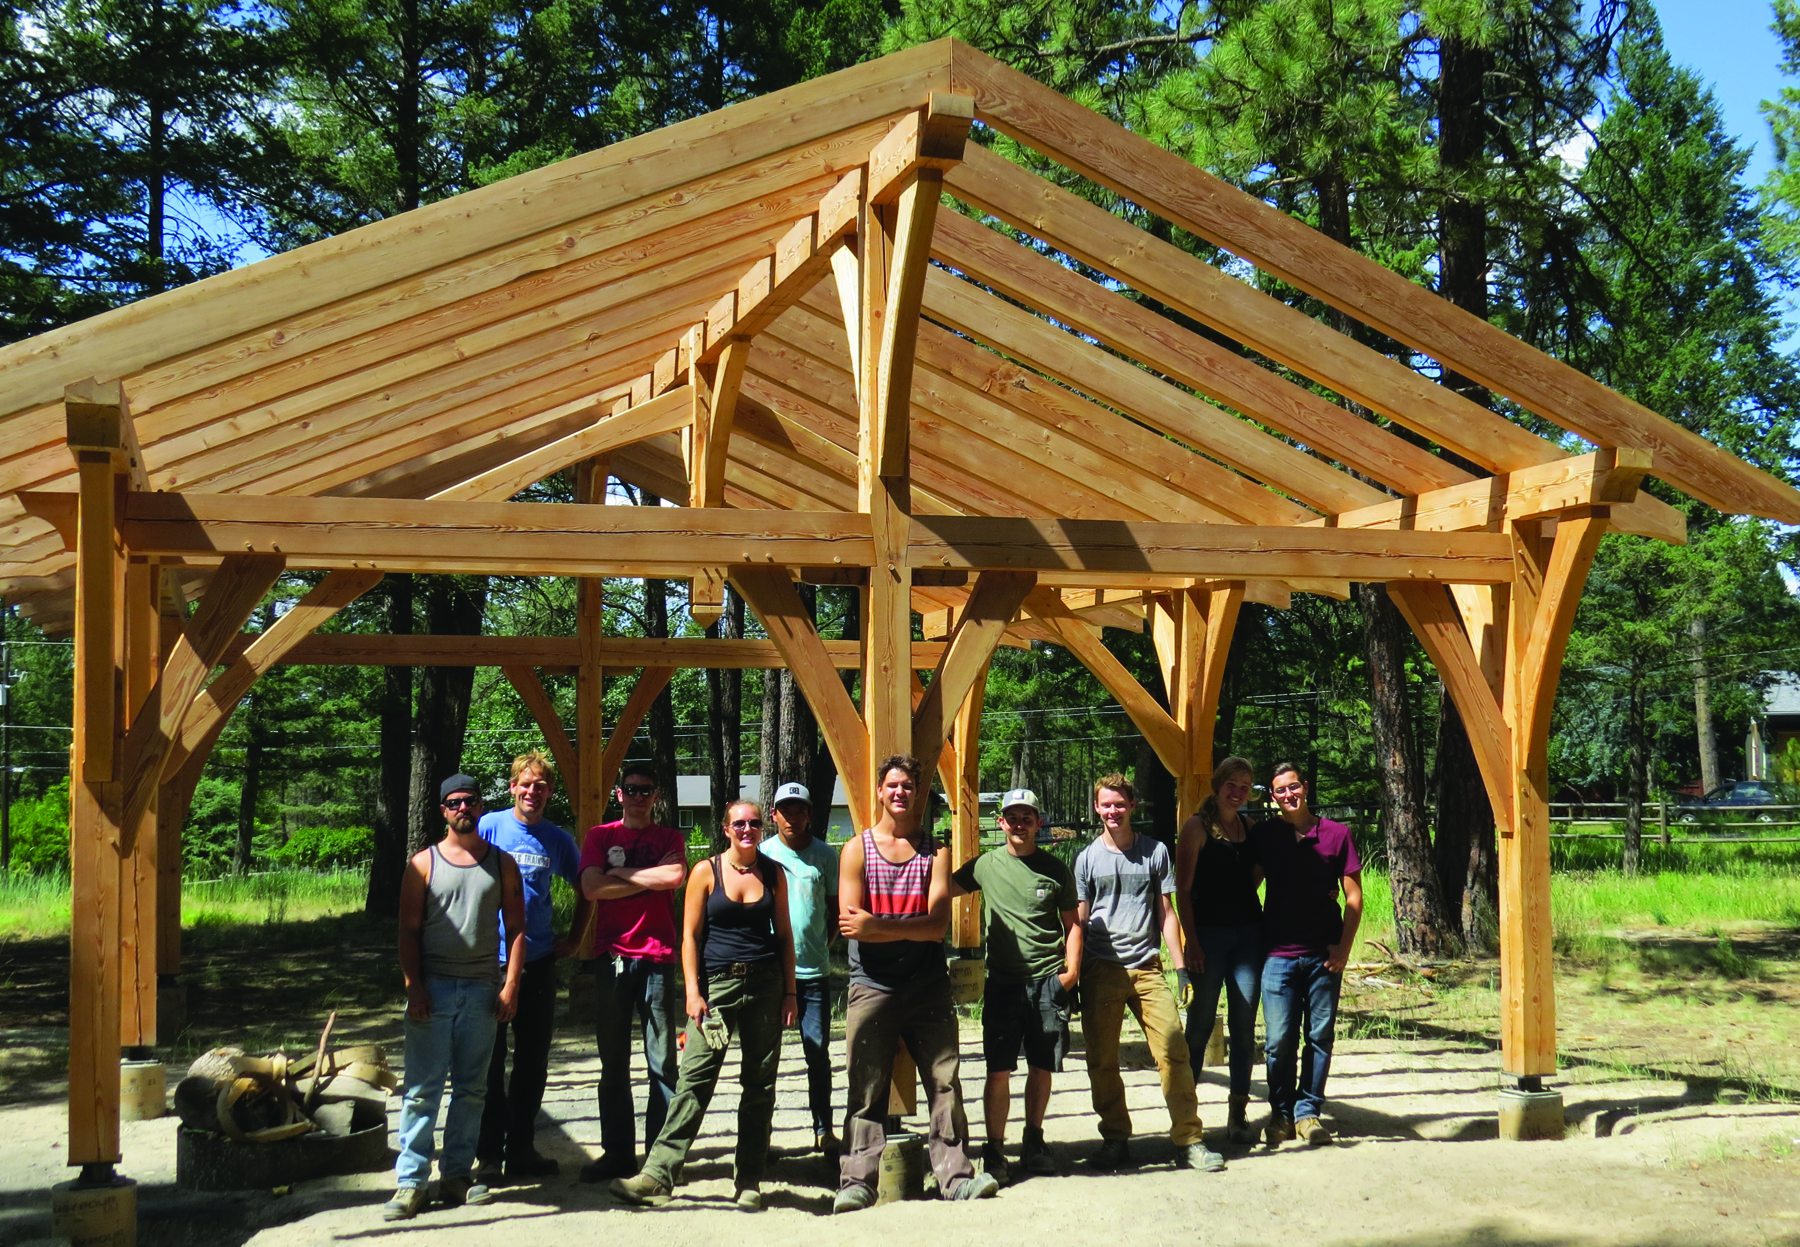 COTR Carpentry students construct community projects